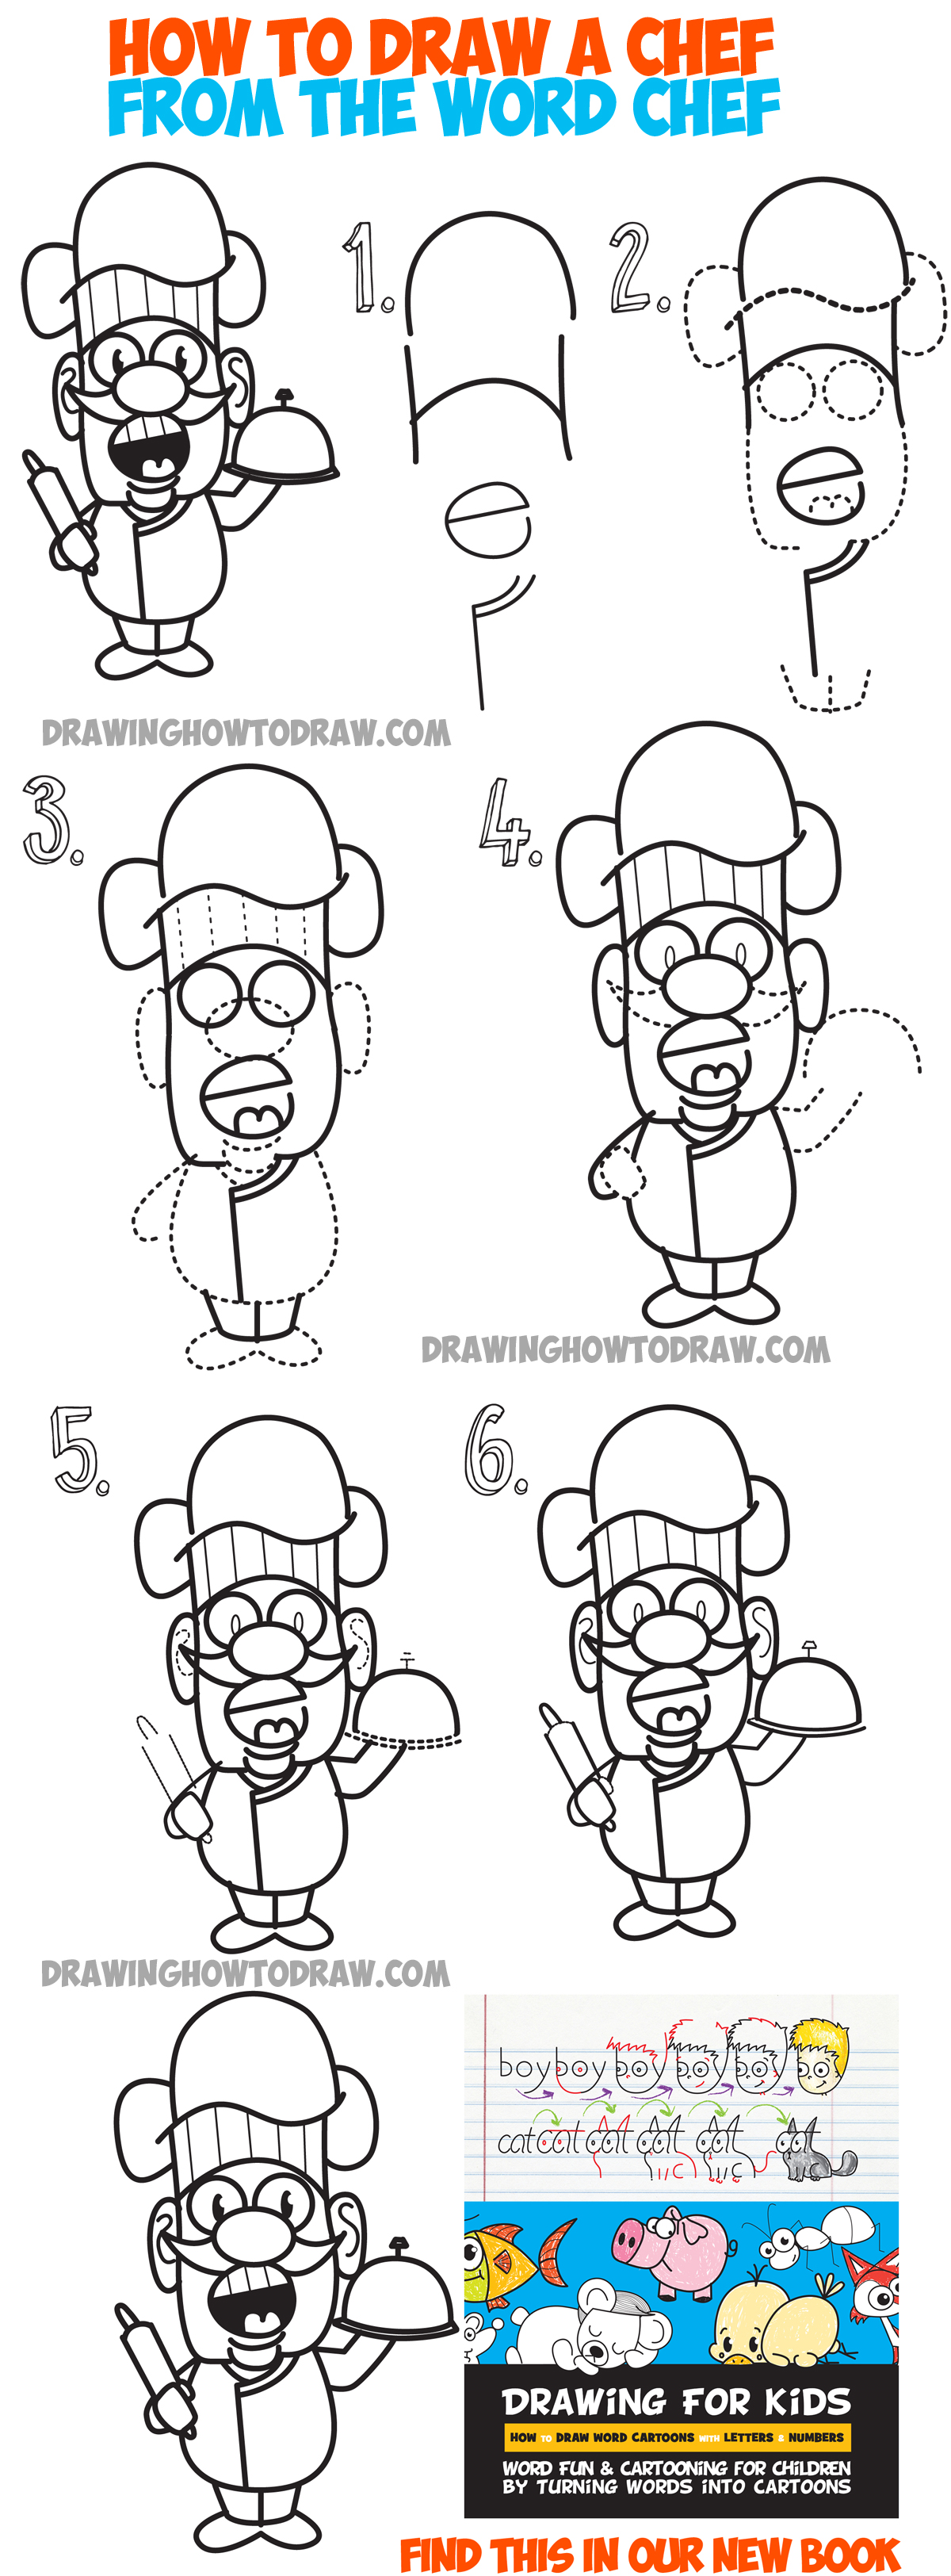 How to Draw a cartoon chef from the word chef